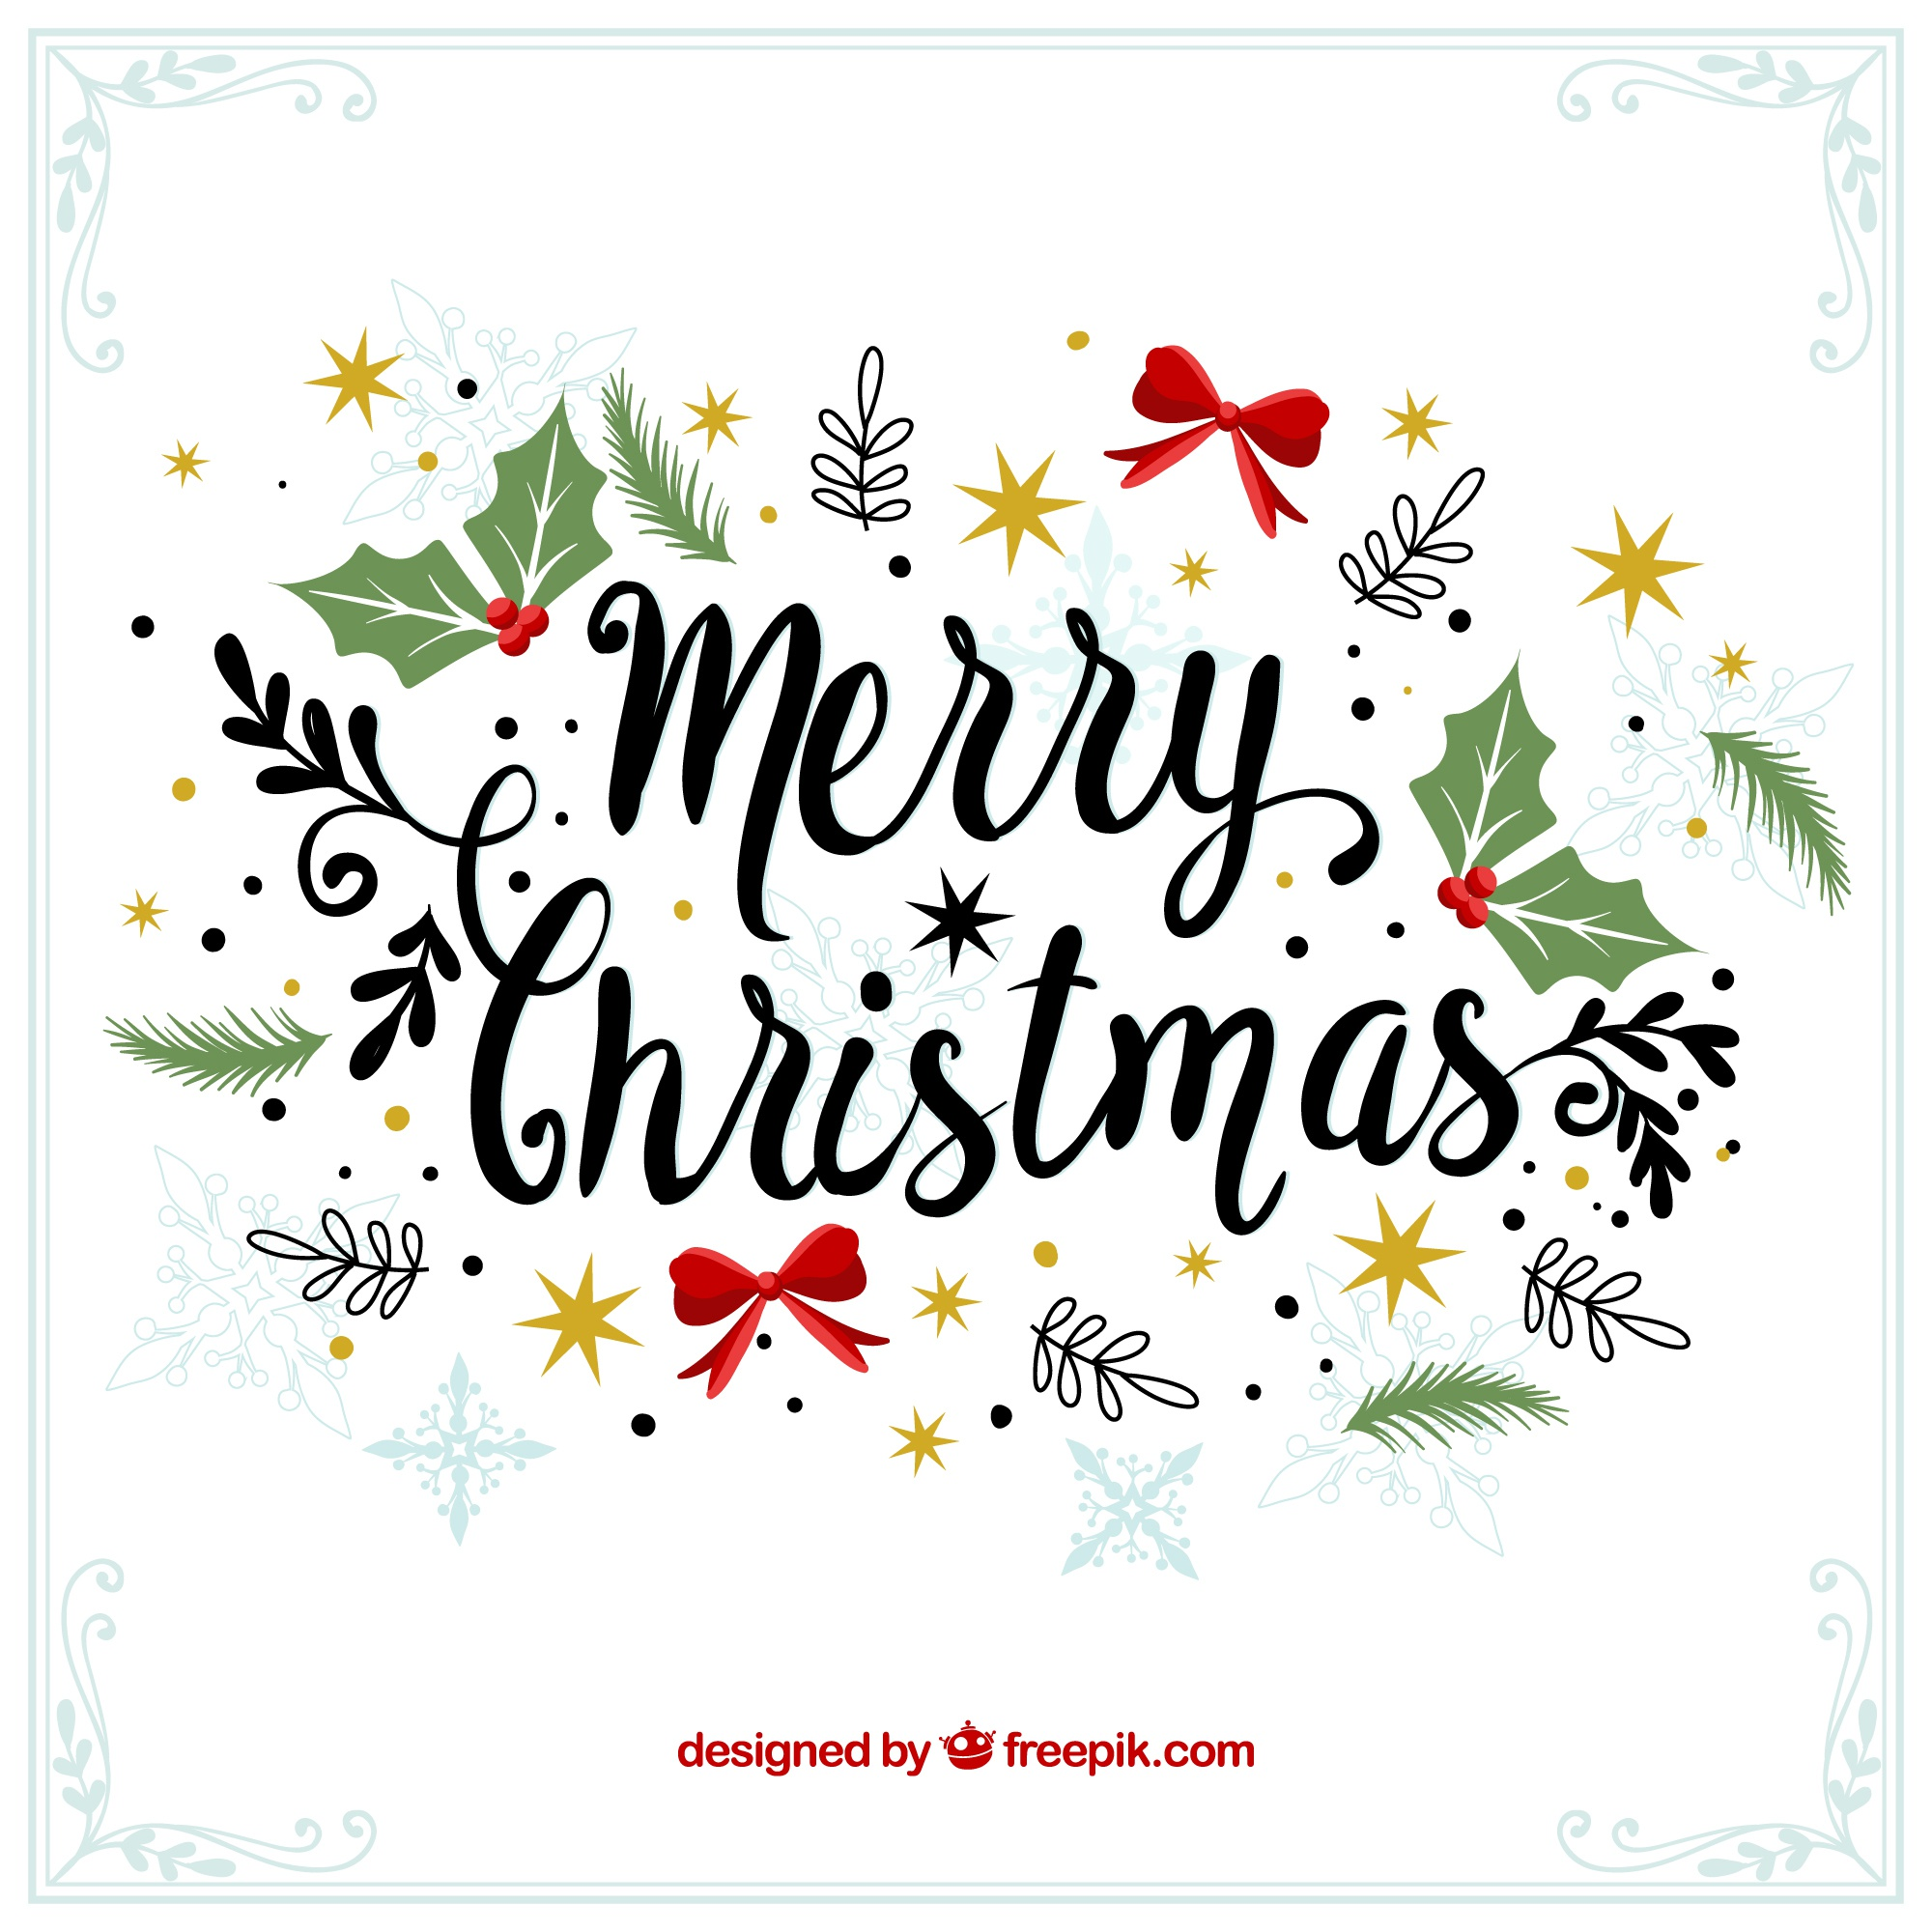 merry christmas decorative vintage background - Pictures For Christmas